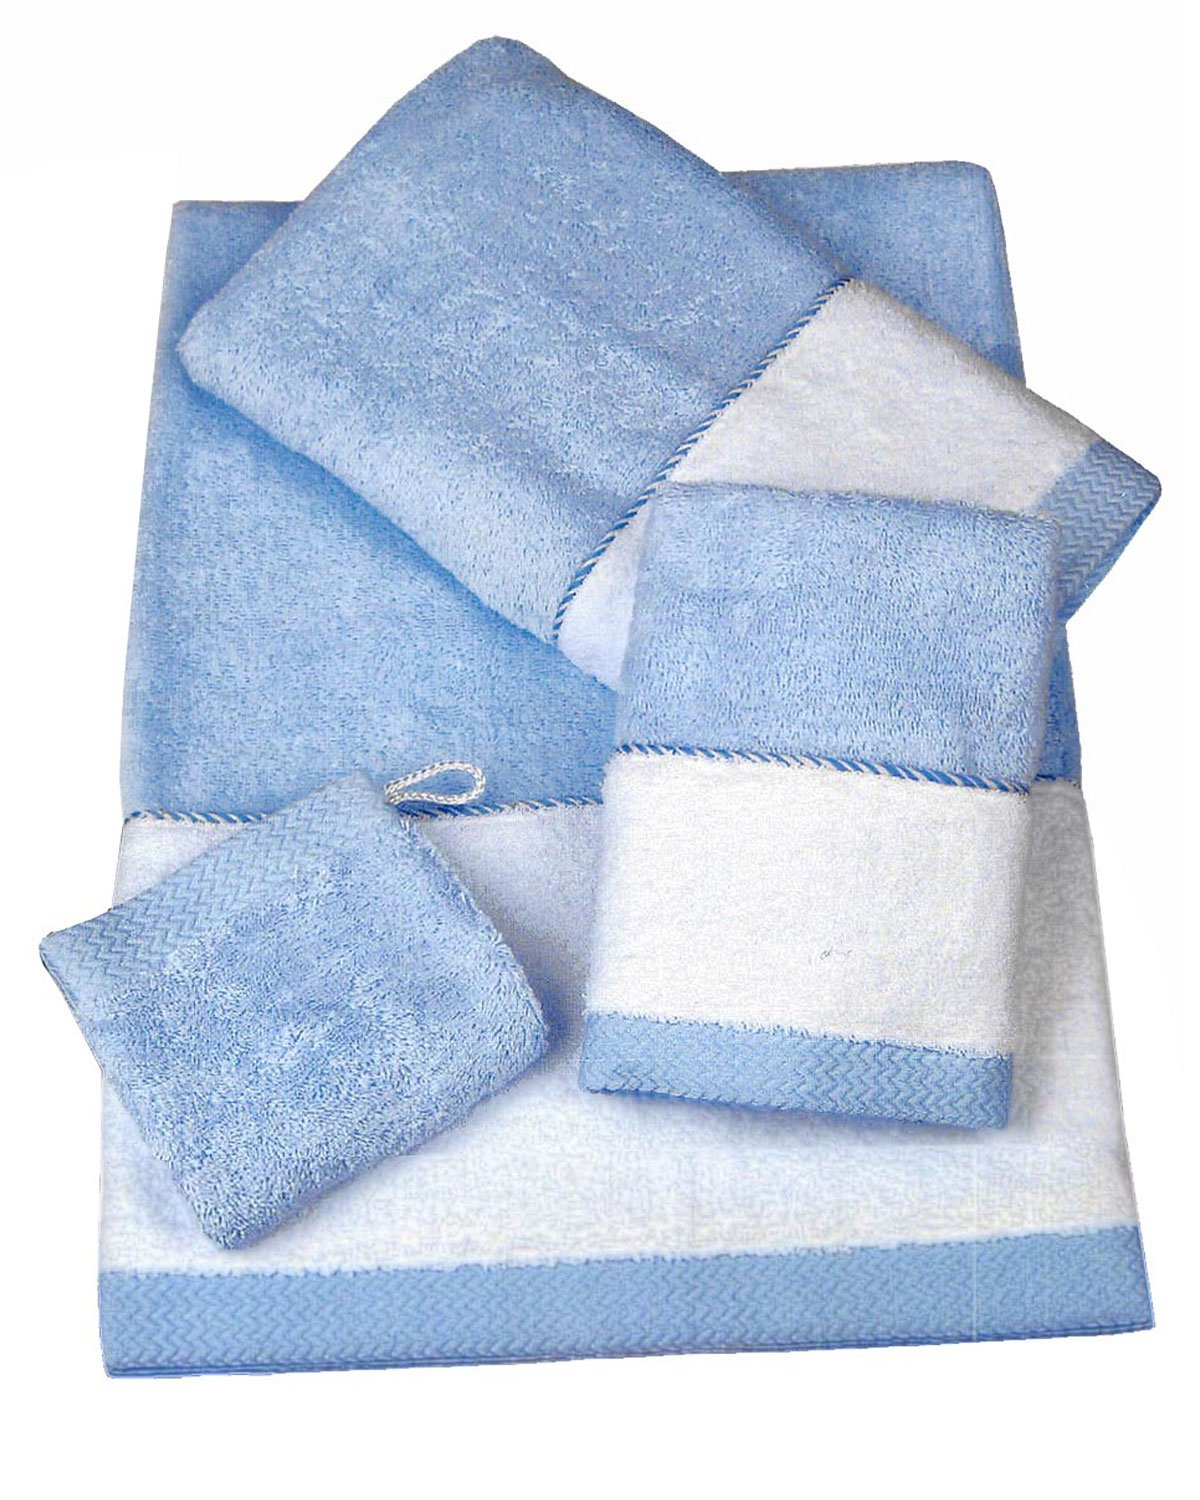 Armani International Théoule European Luxury Egyptian Combed Cotton 1 Guest-Towel, 1 Hand Towel, 1 Bath Towel, 1 Bath Wash Mitt in Aria Blue